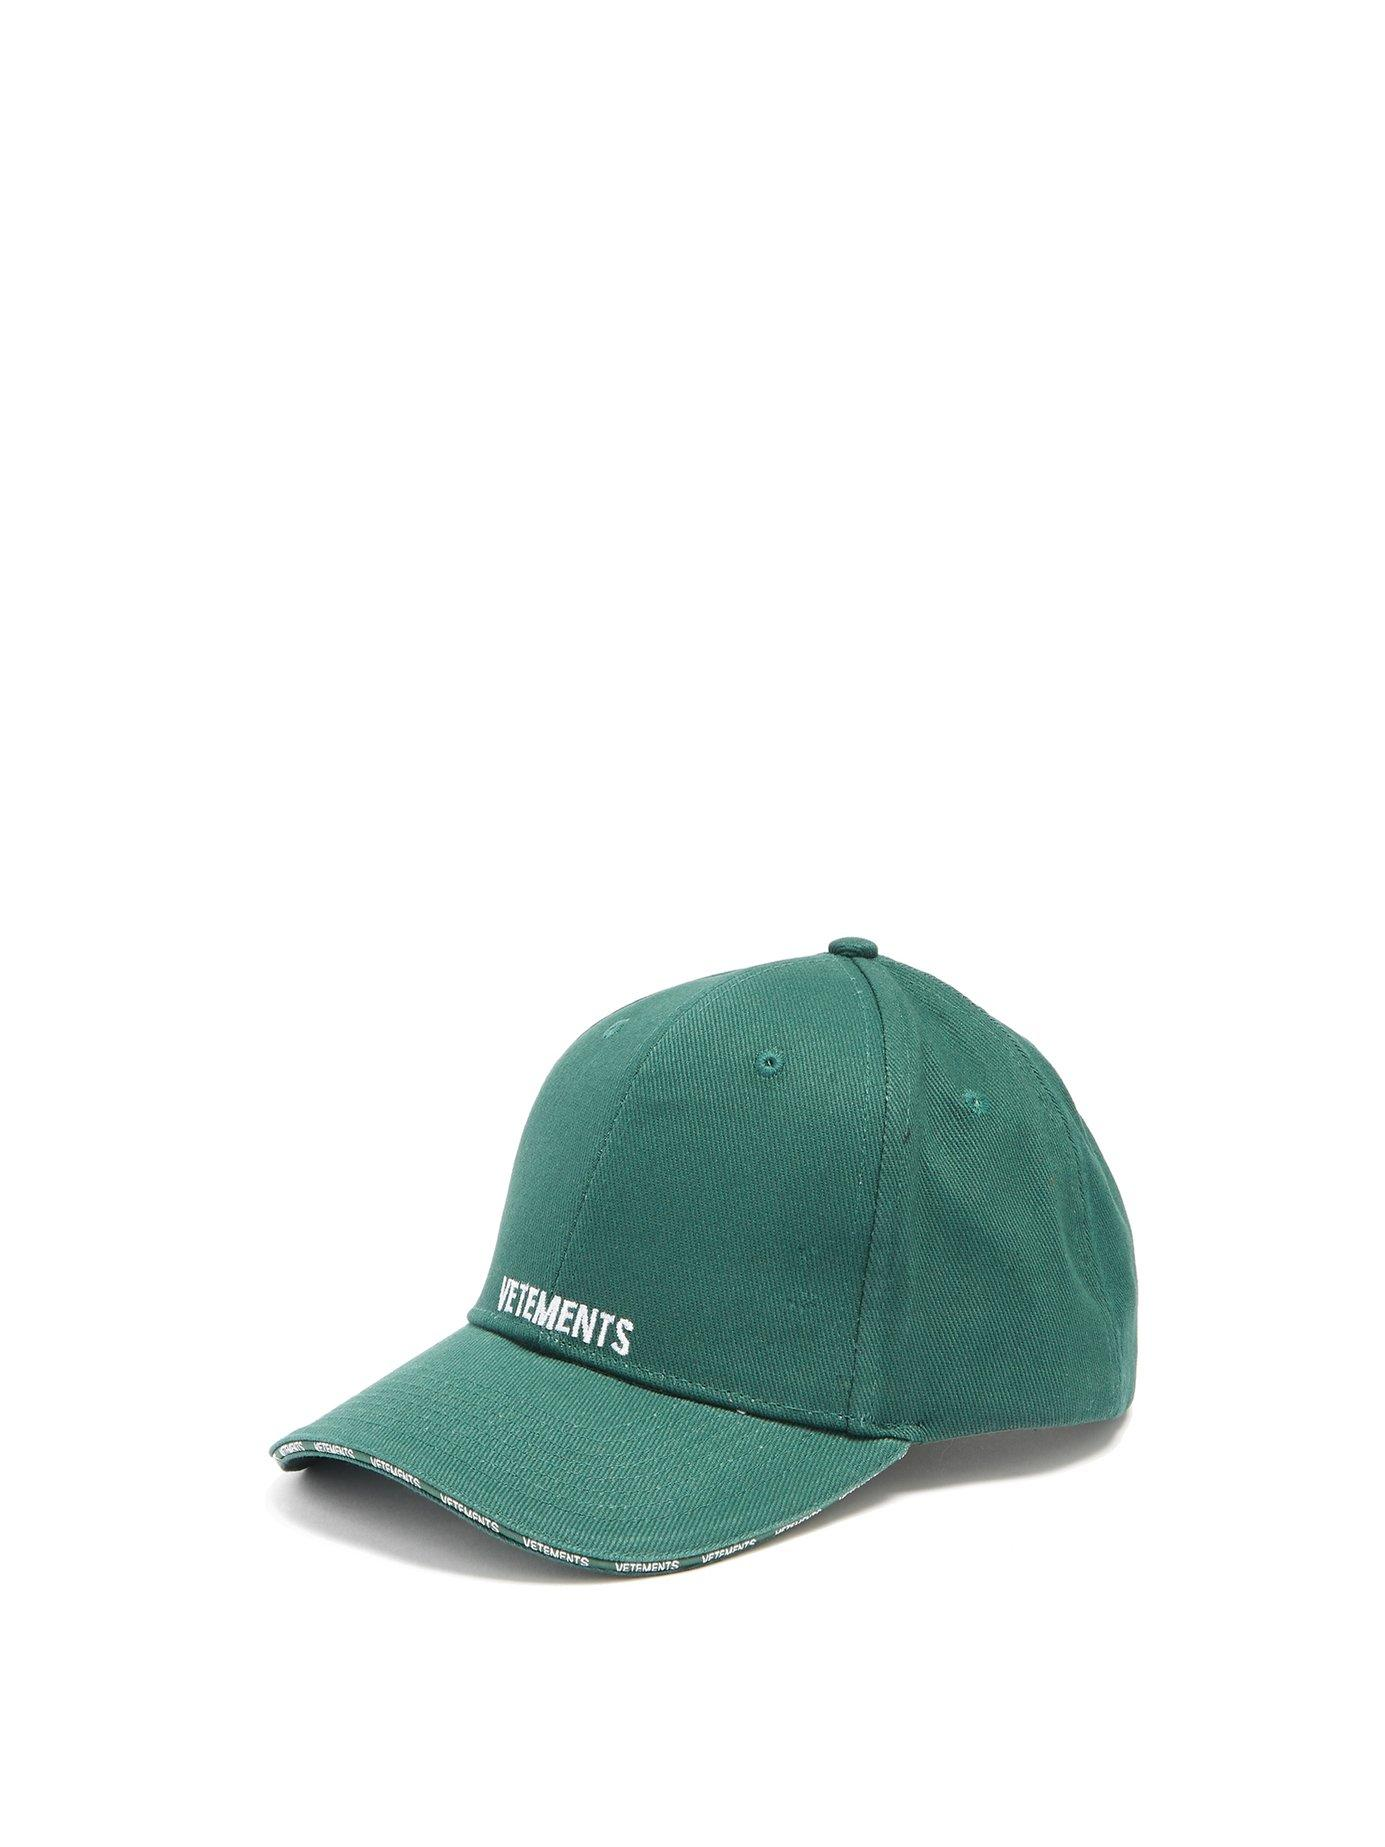 16ab6aabaaf98a Vetements Logo-Embroidered Cotton Cap In Green   ModeSens